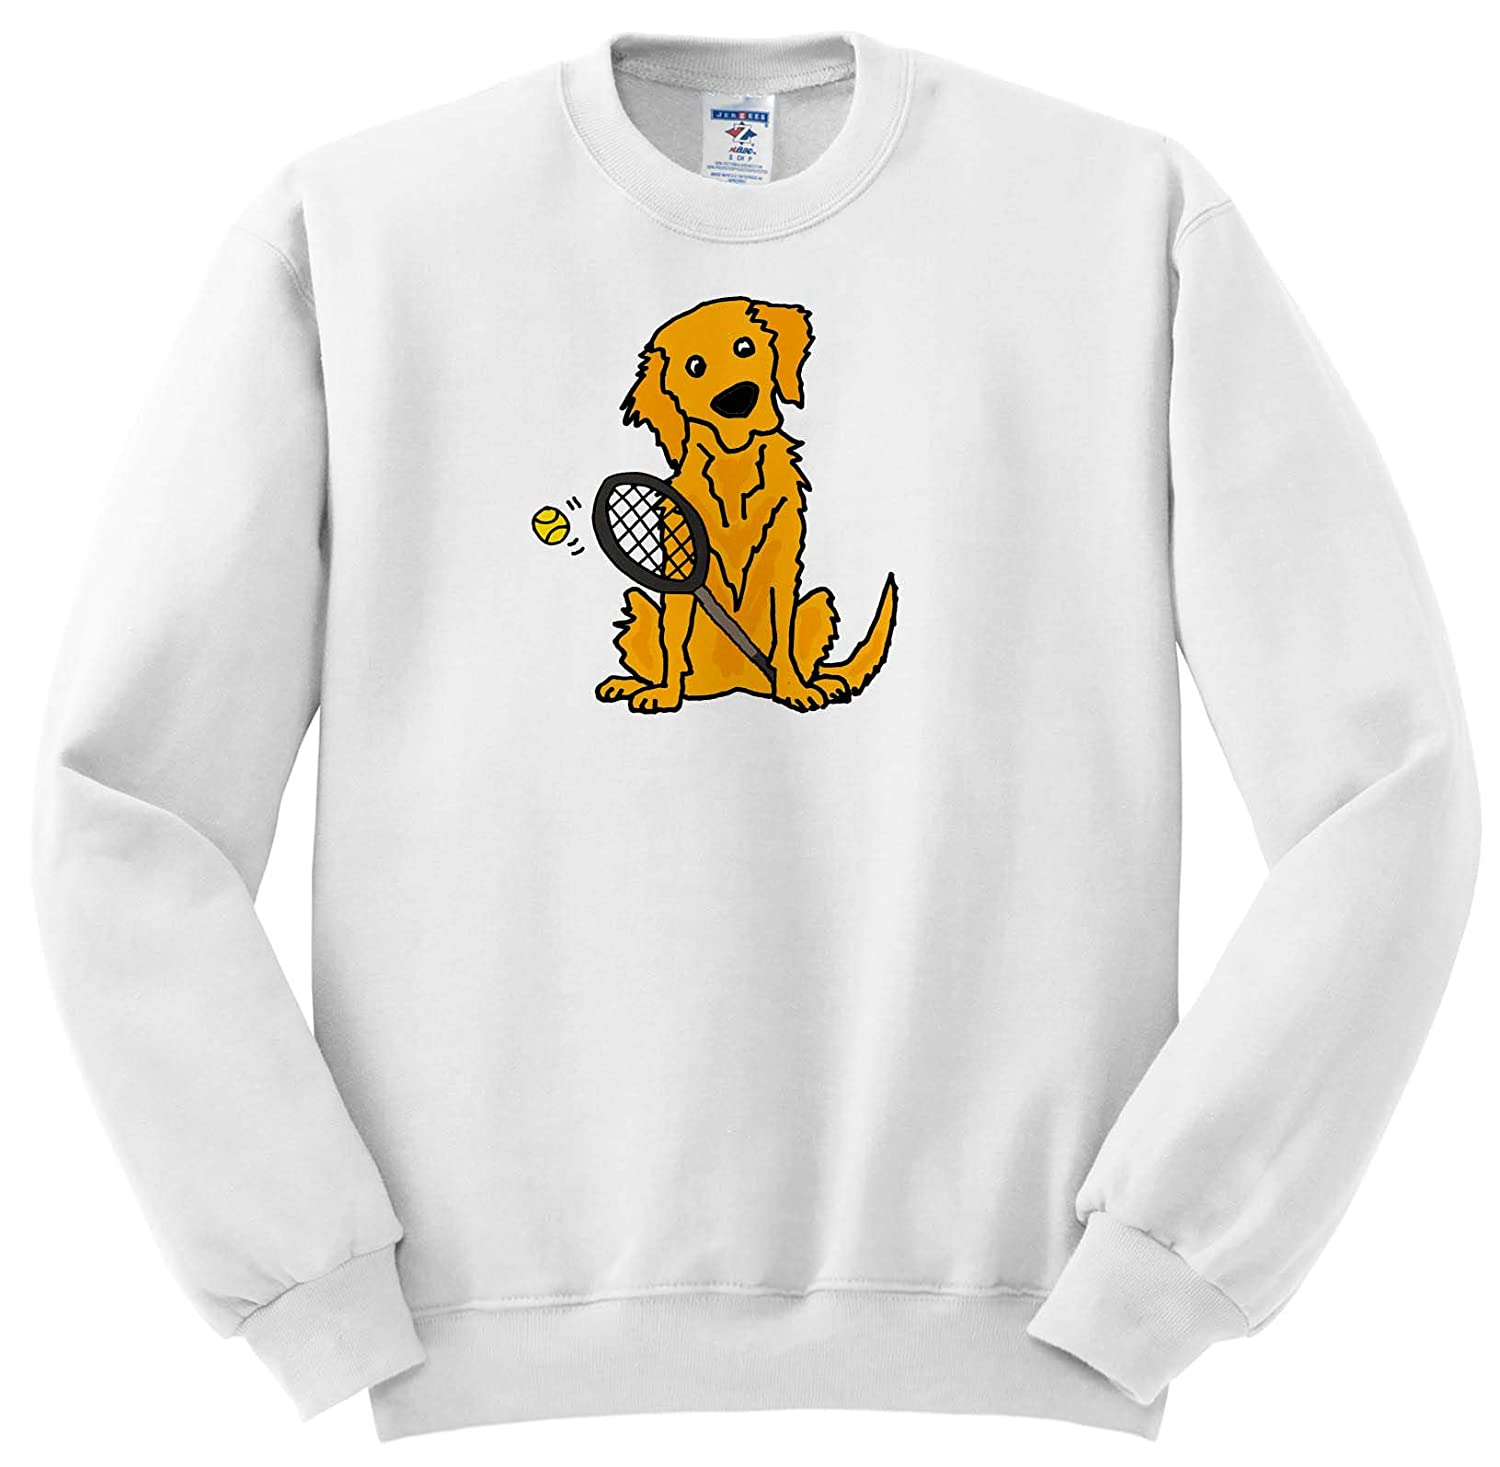 3dRose All Smiles Art - Pets - Cute Funny Golden Retriever Puppy Dog Playing Tennis - Sweatshirts ss_292512